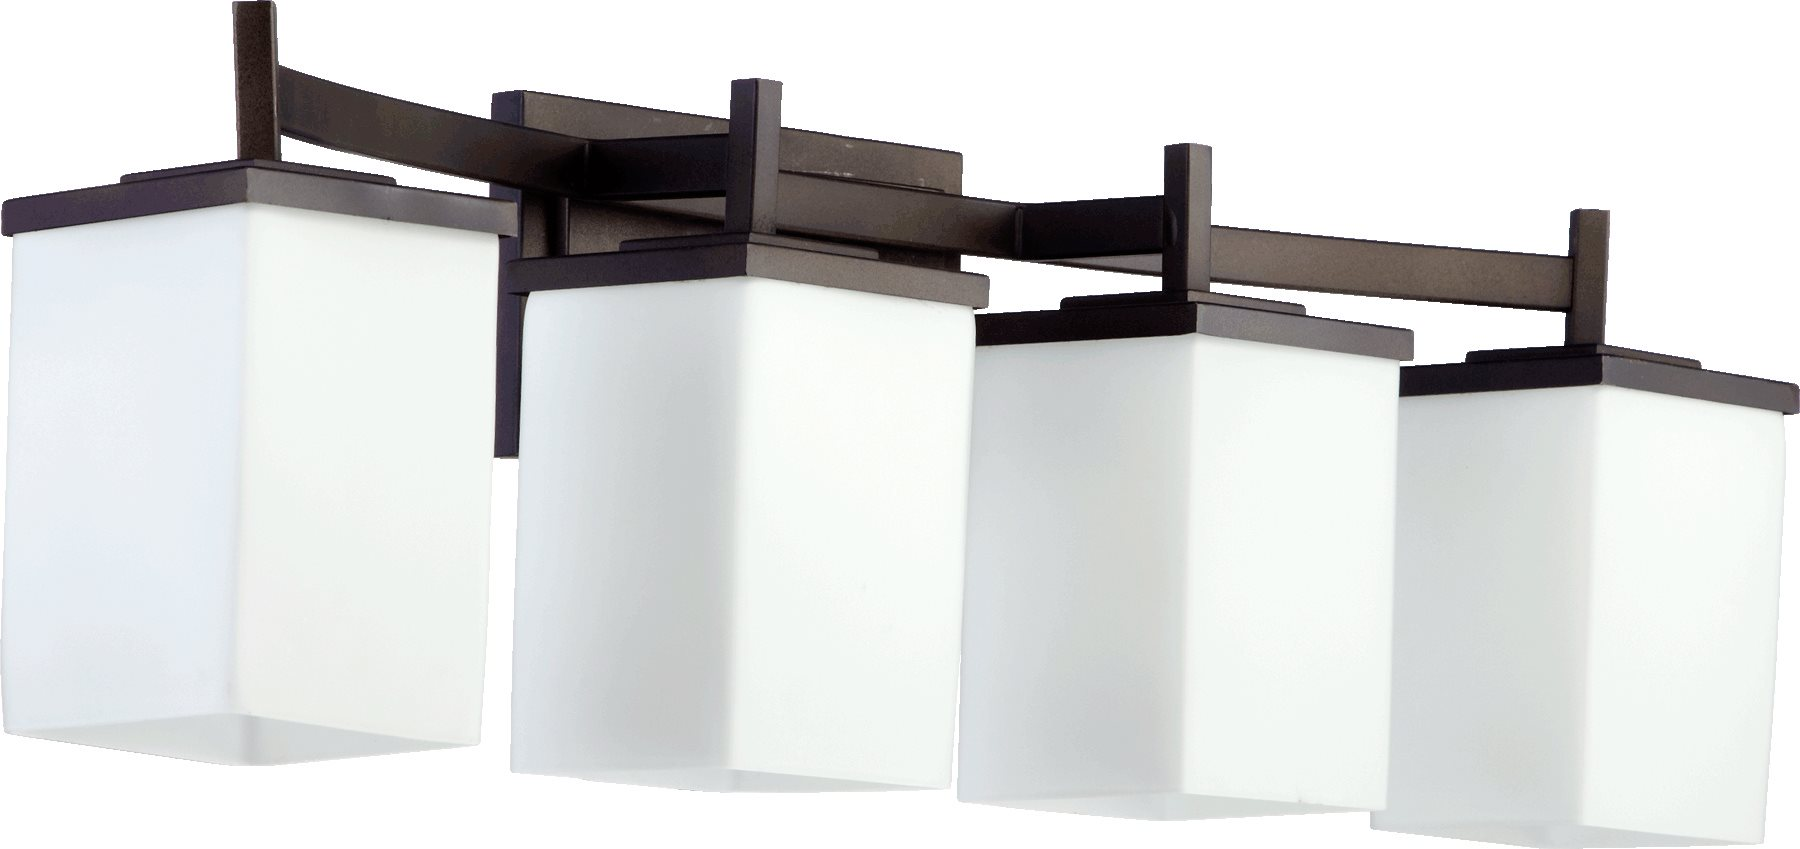 Delta Modern Contemporary Bathroom Vanity Light Xrq 68 4 4805